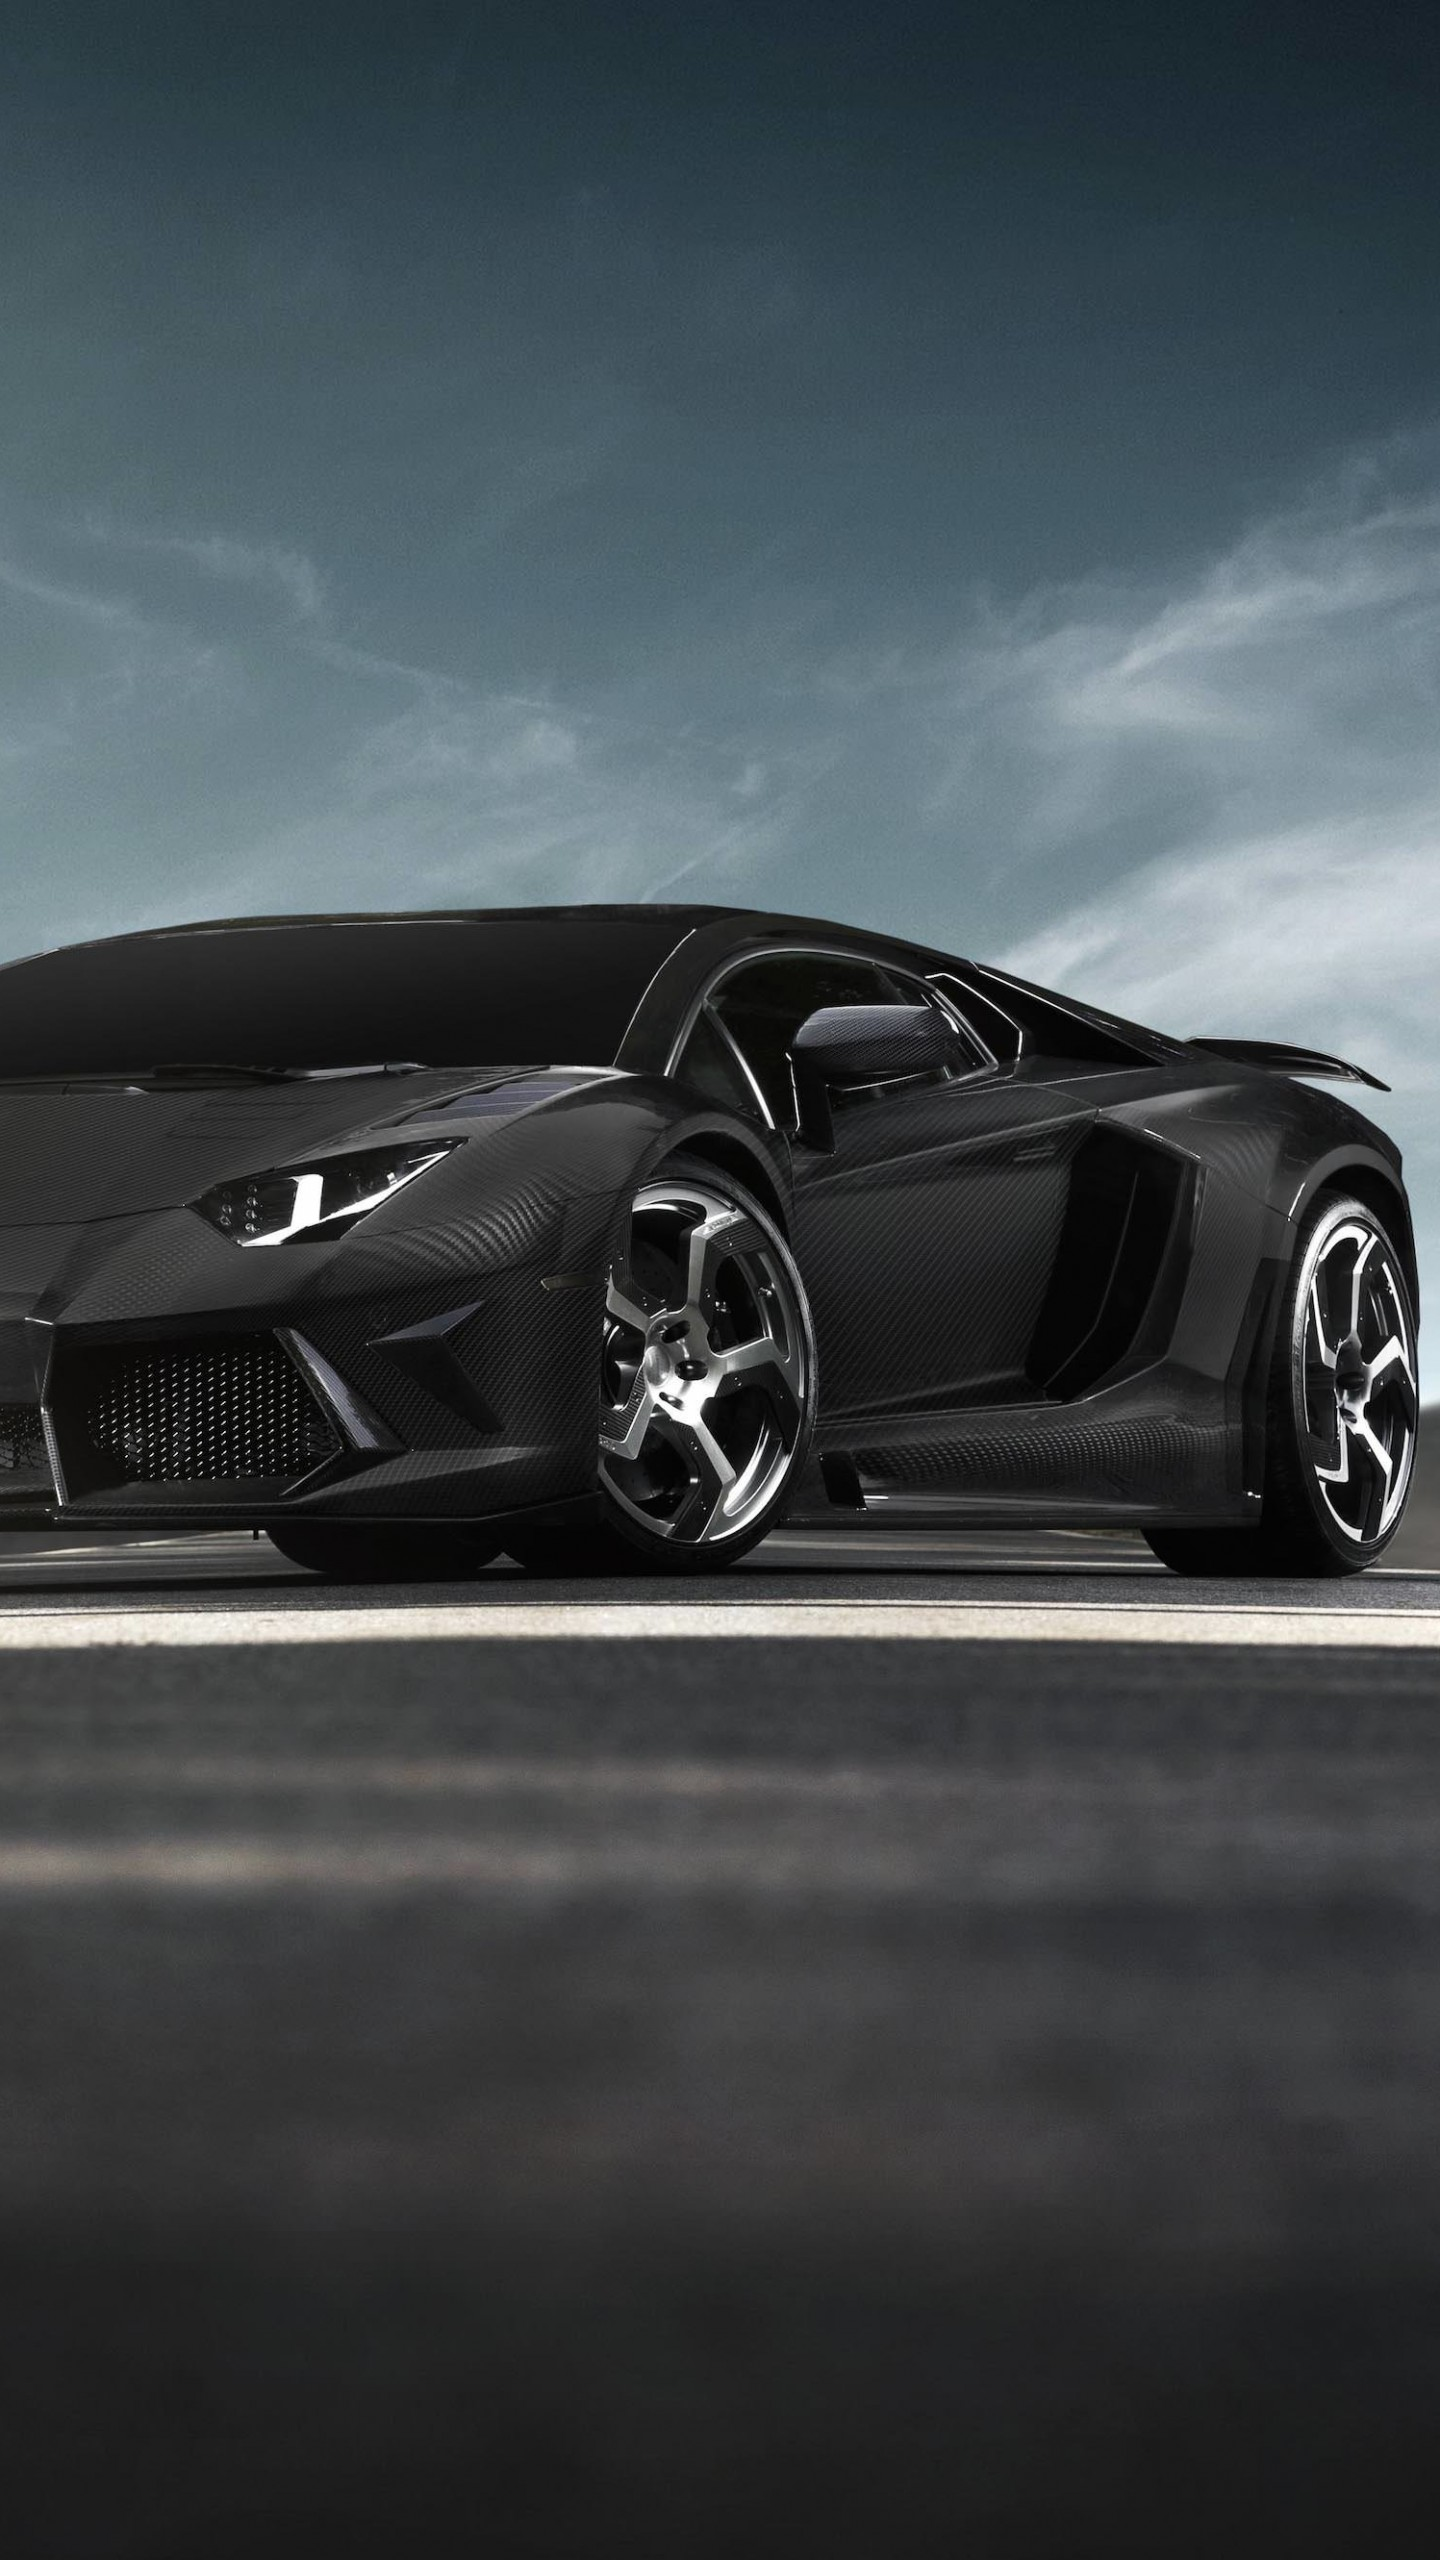 Mansory Carbonado Lamborghini Aventador LP700-4 Wallpaper for Google Nexus 6